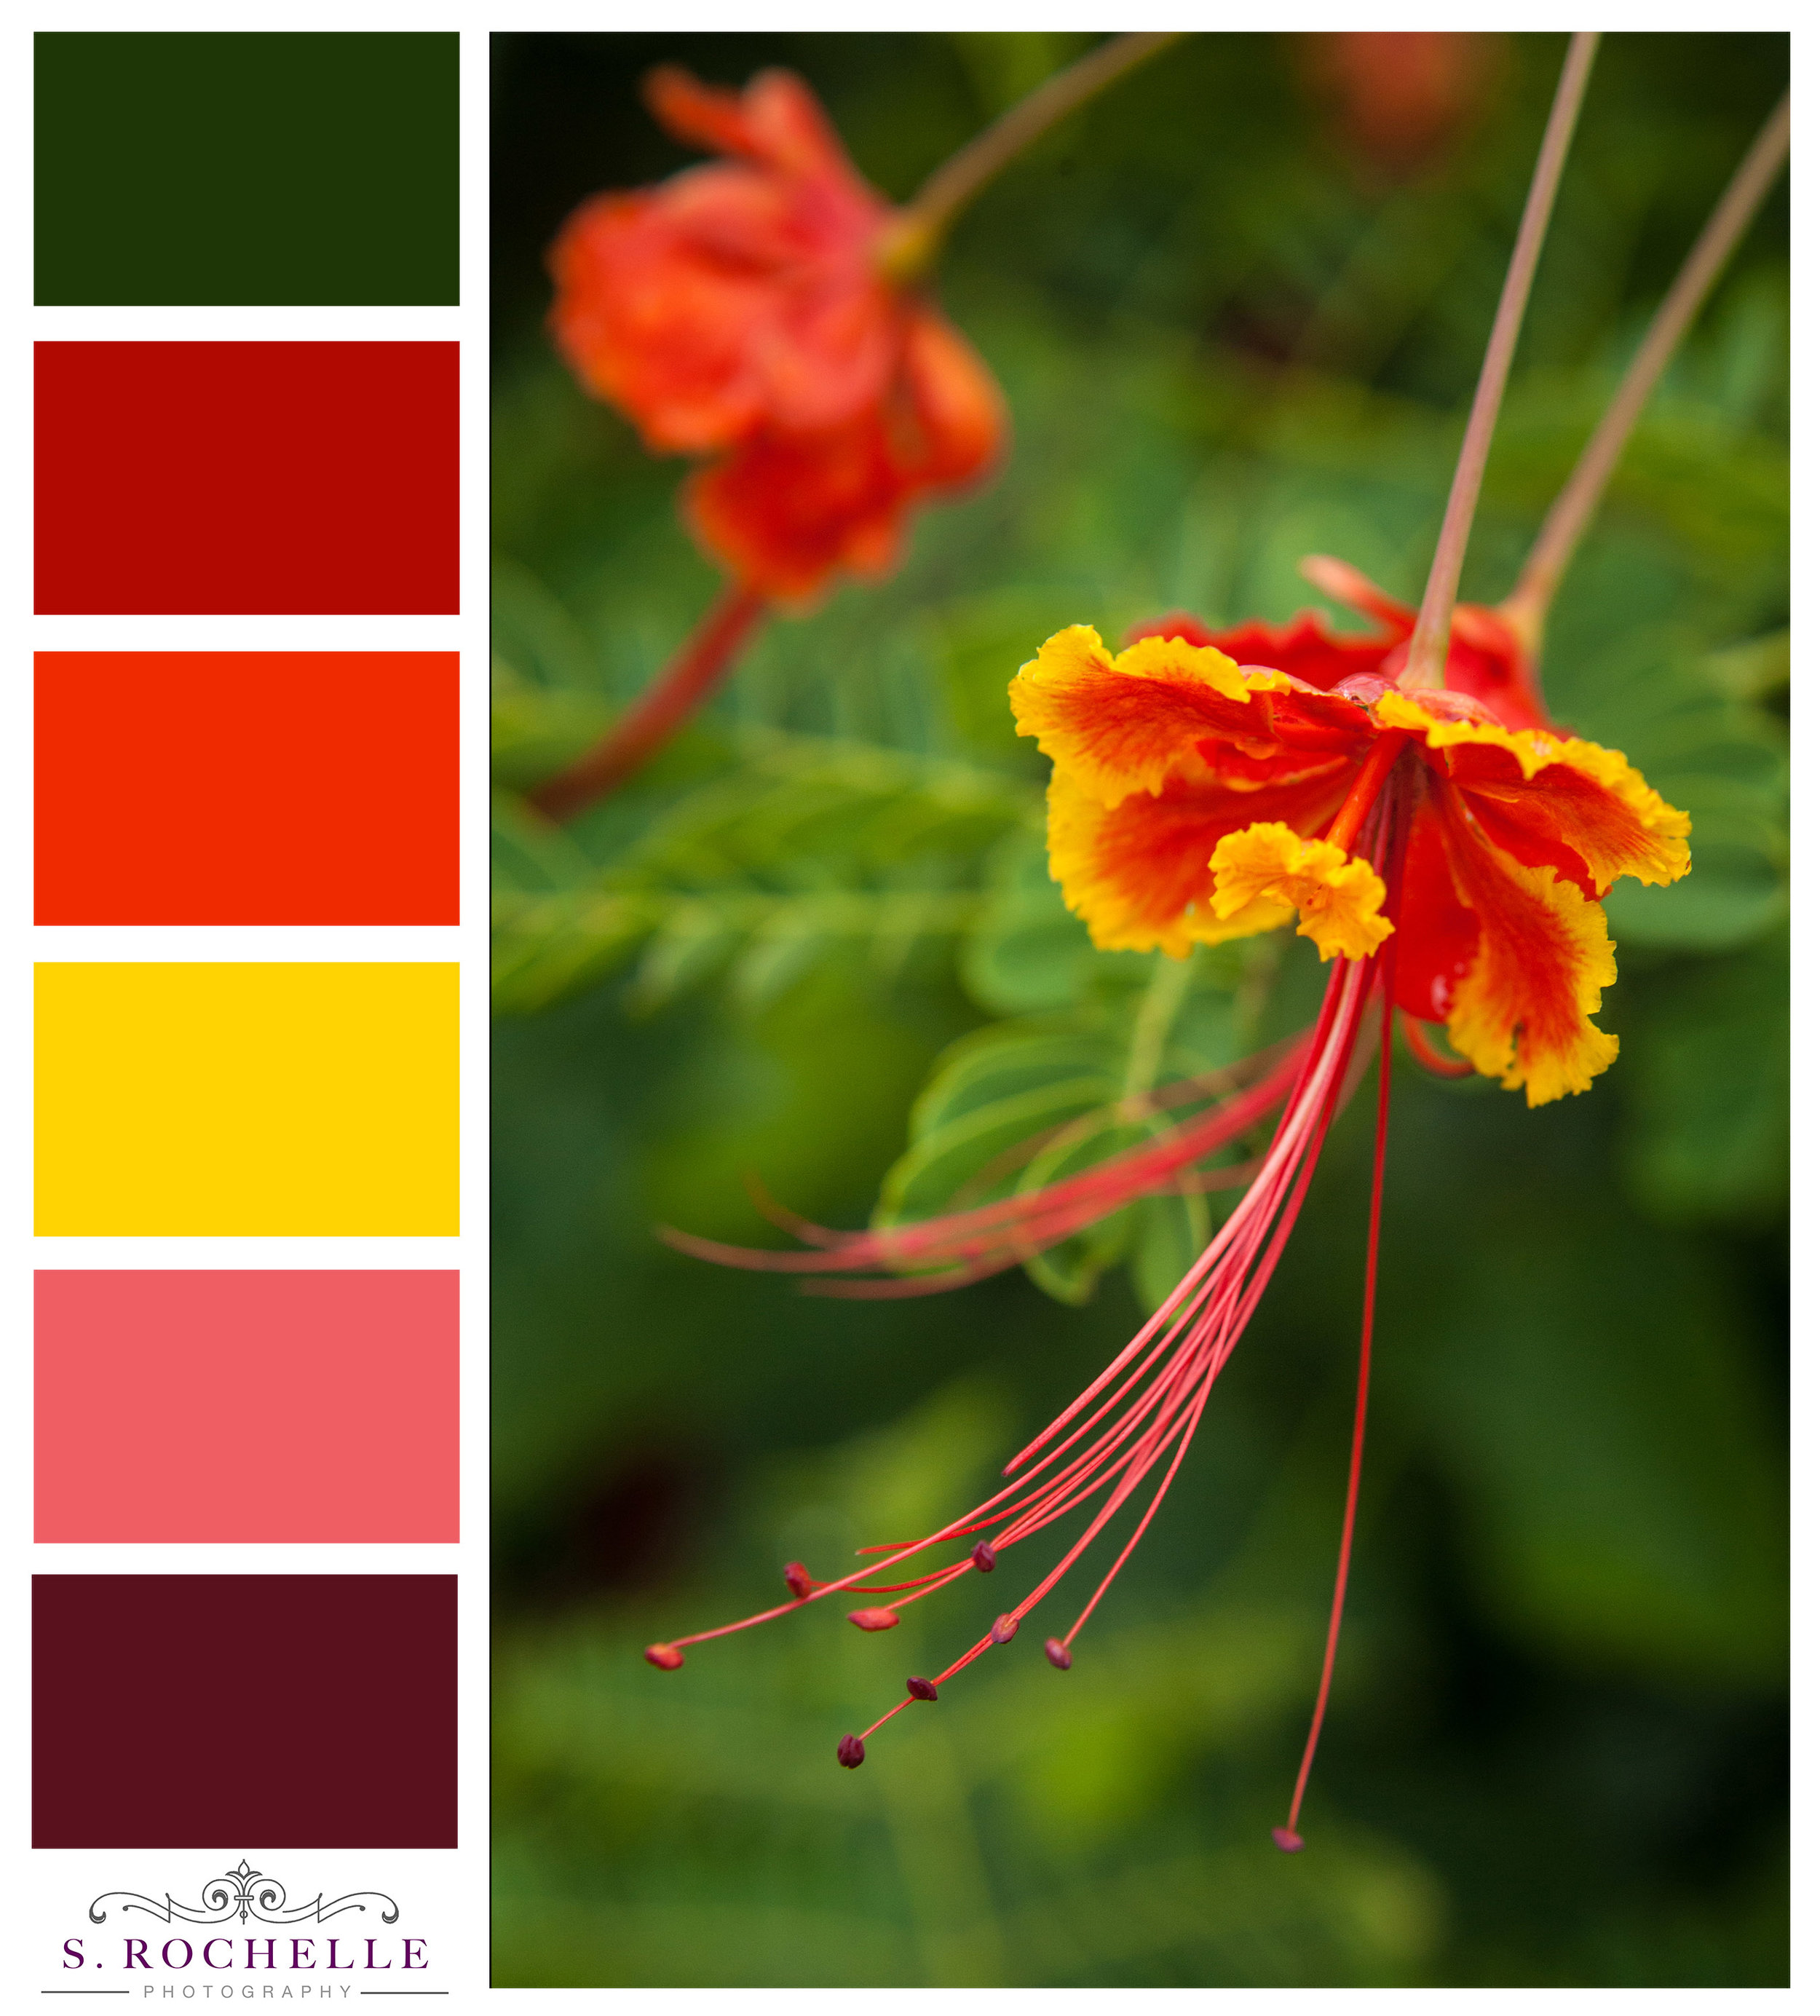 Peacock Flower_S_Rochelle_Photography_20130630_IMG1134_ColorPalette.jpg